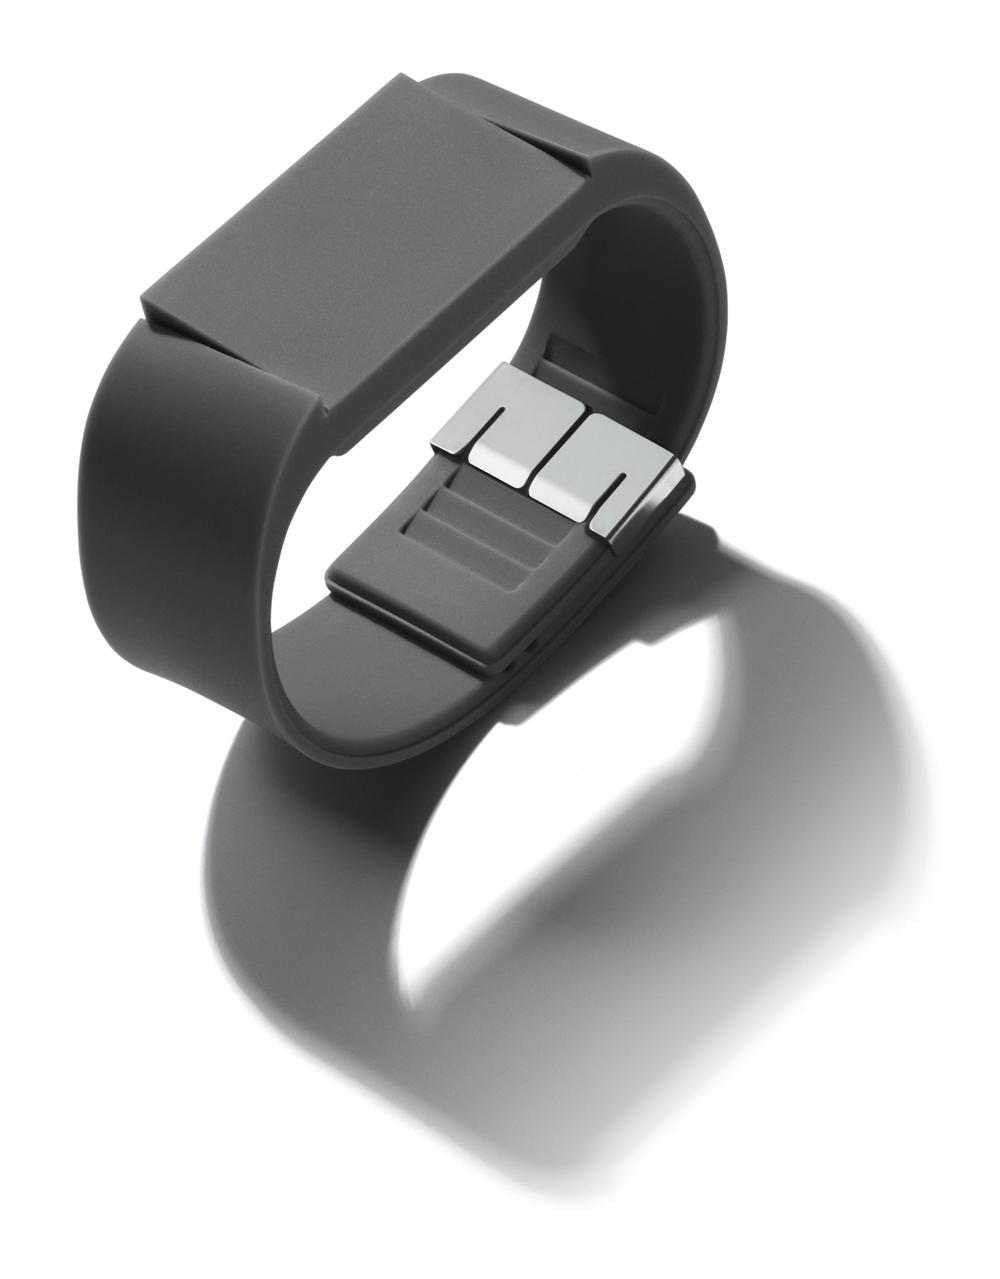 Mutewatch_Charcoal_Grey_Perspective Top 35 Amazing Futuristic Watches